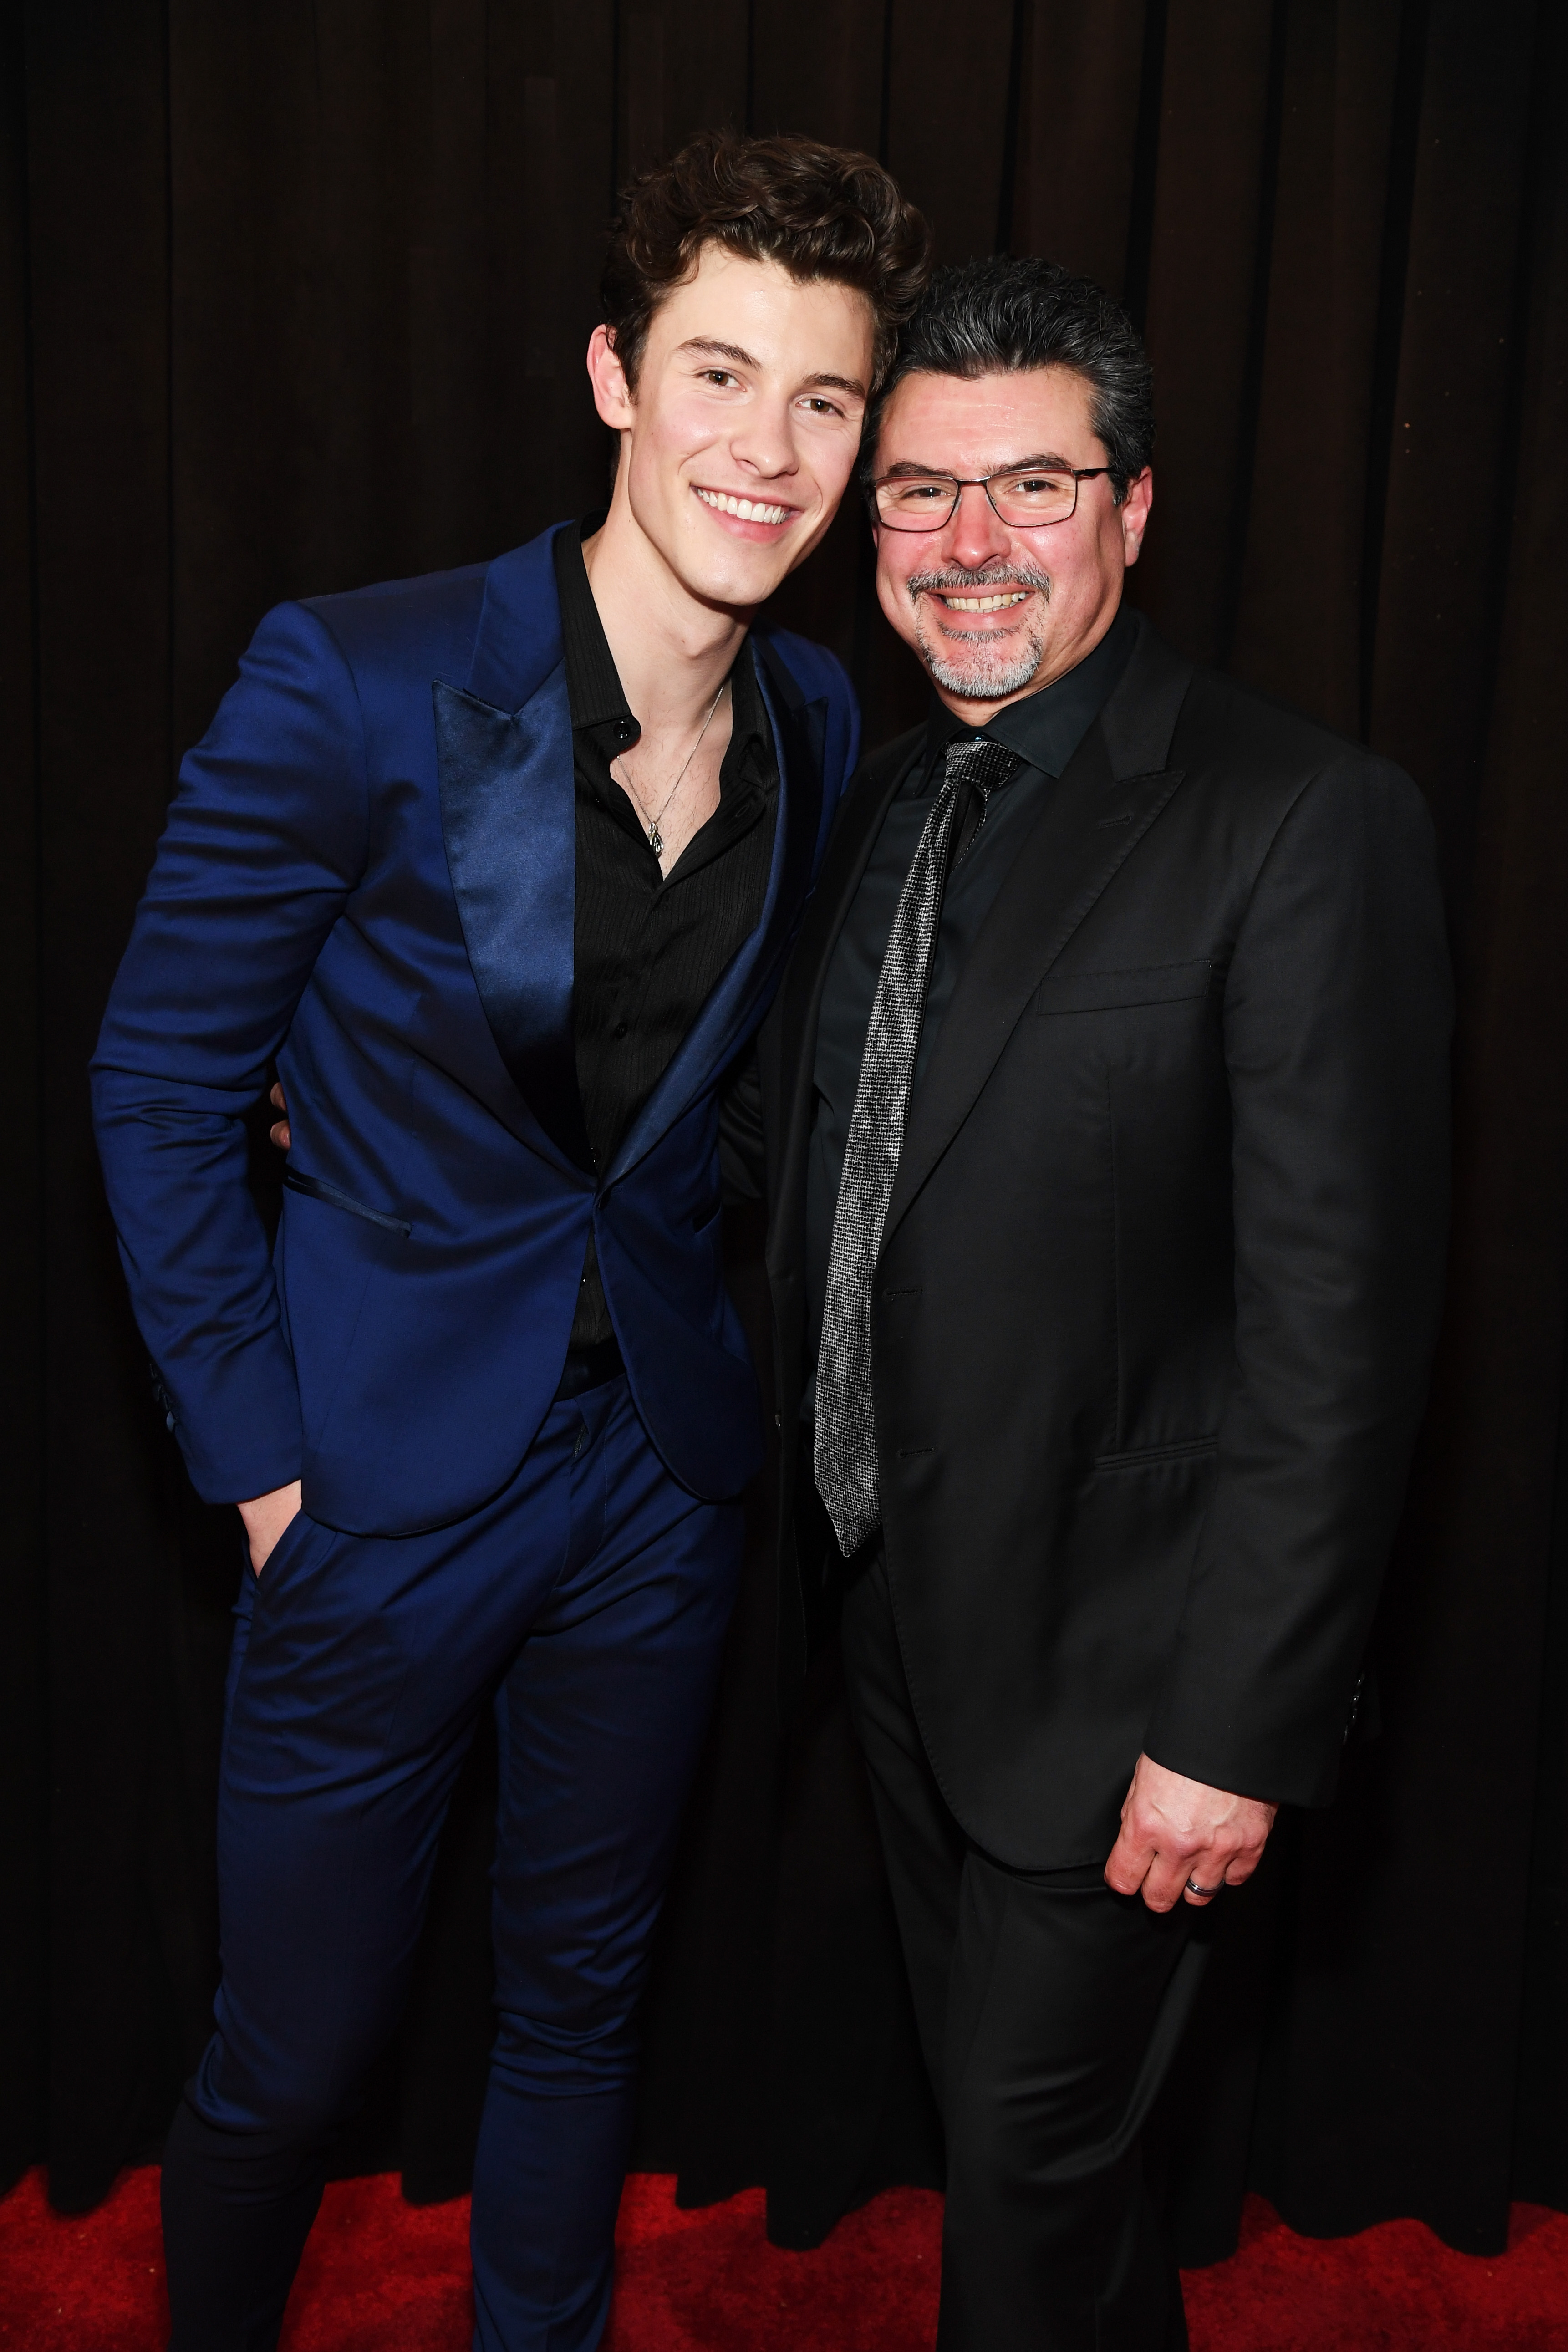 """Grammys 2019: Shawn Mendes, Miley Cyrus and More Stars Who Brought Family Members as Dates - The """"In My Blood"""" singer, who is nominated for Song of the Year and Best Pop Vocal Album, took an adorable photo with his father."""